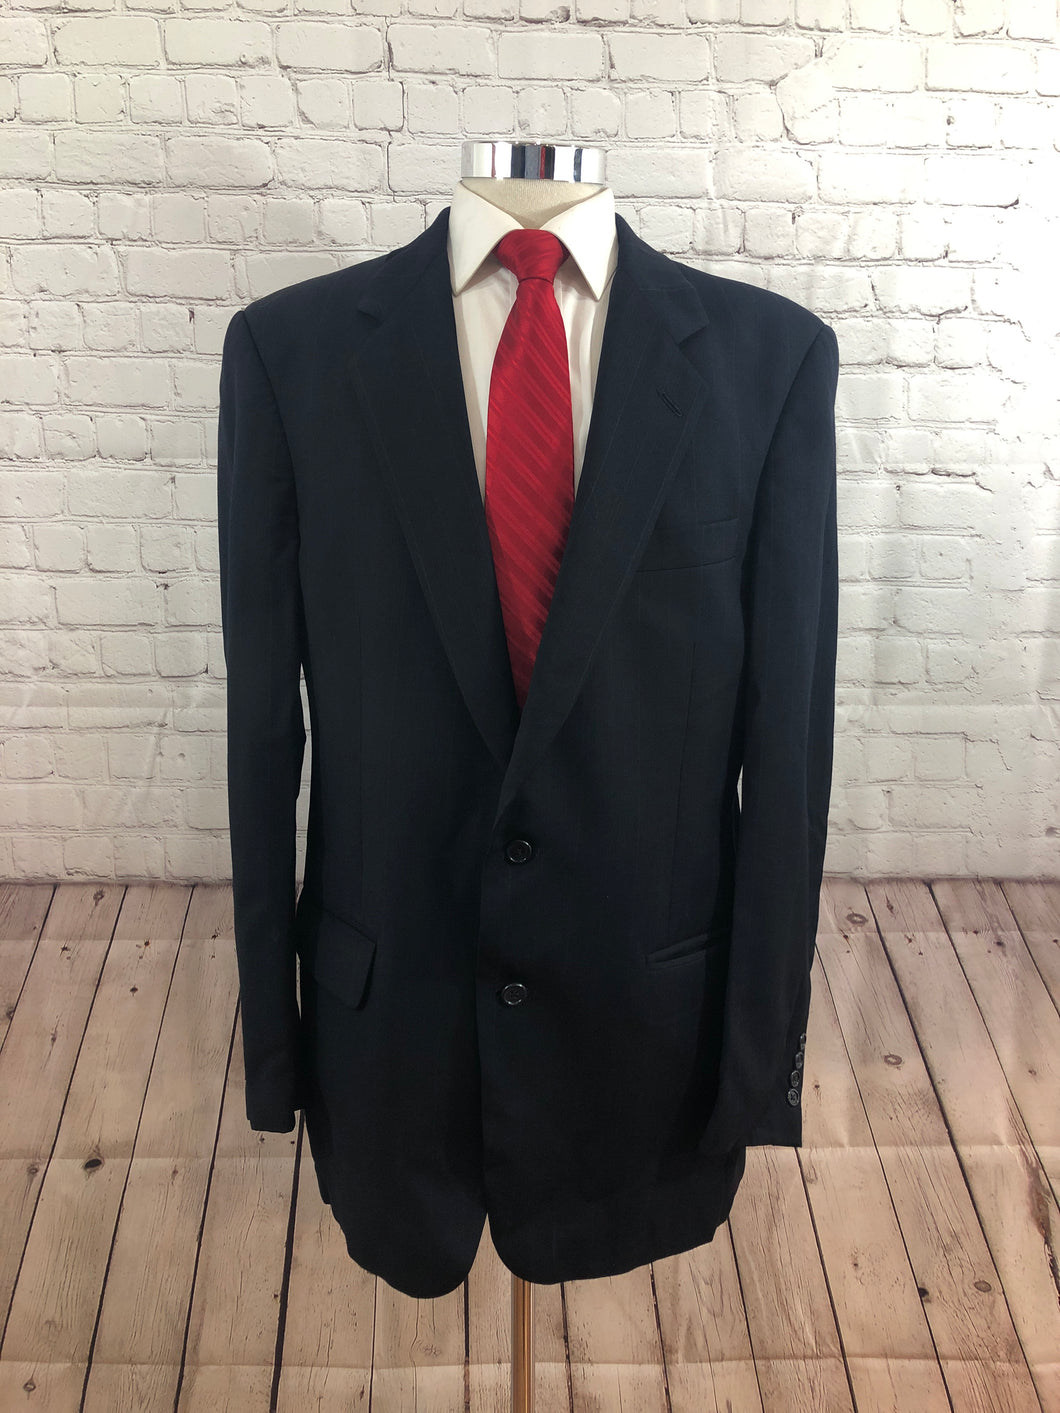 Burberry Men's Navy Blue Stripe Wool Two Button Suit 42R 34X31 - SUIT CHARITY OUTLET